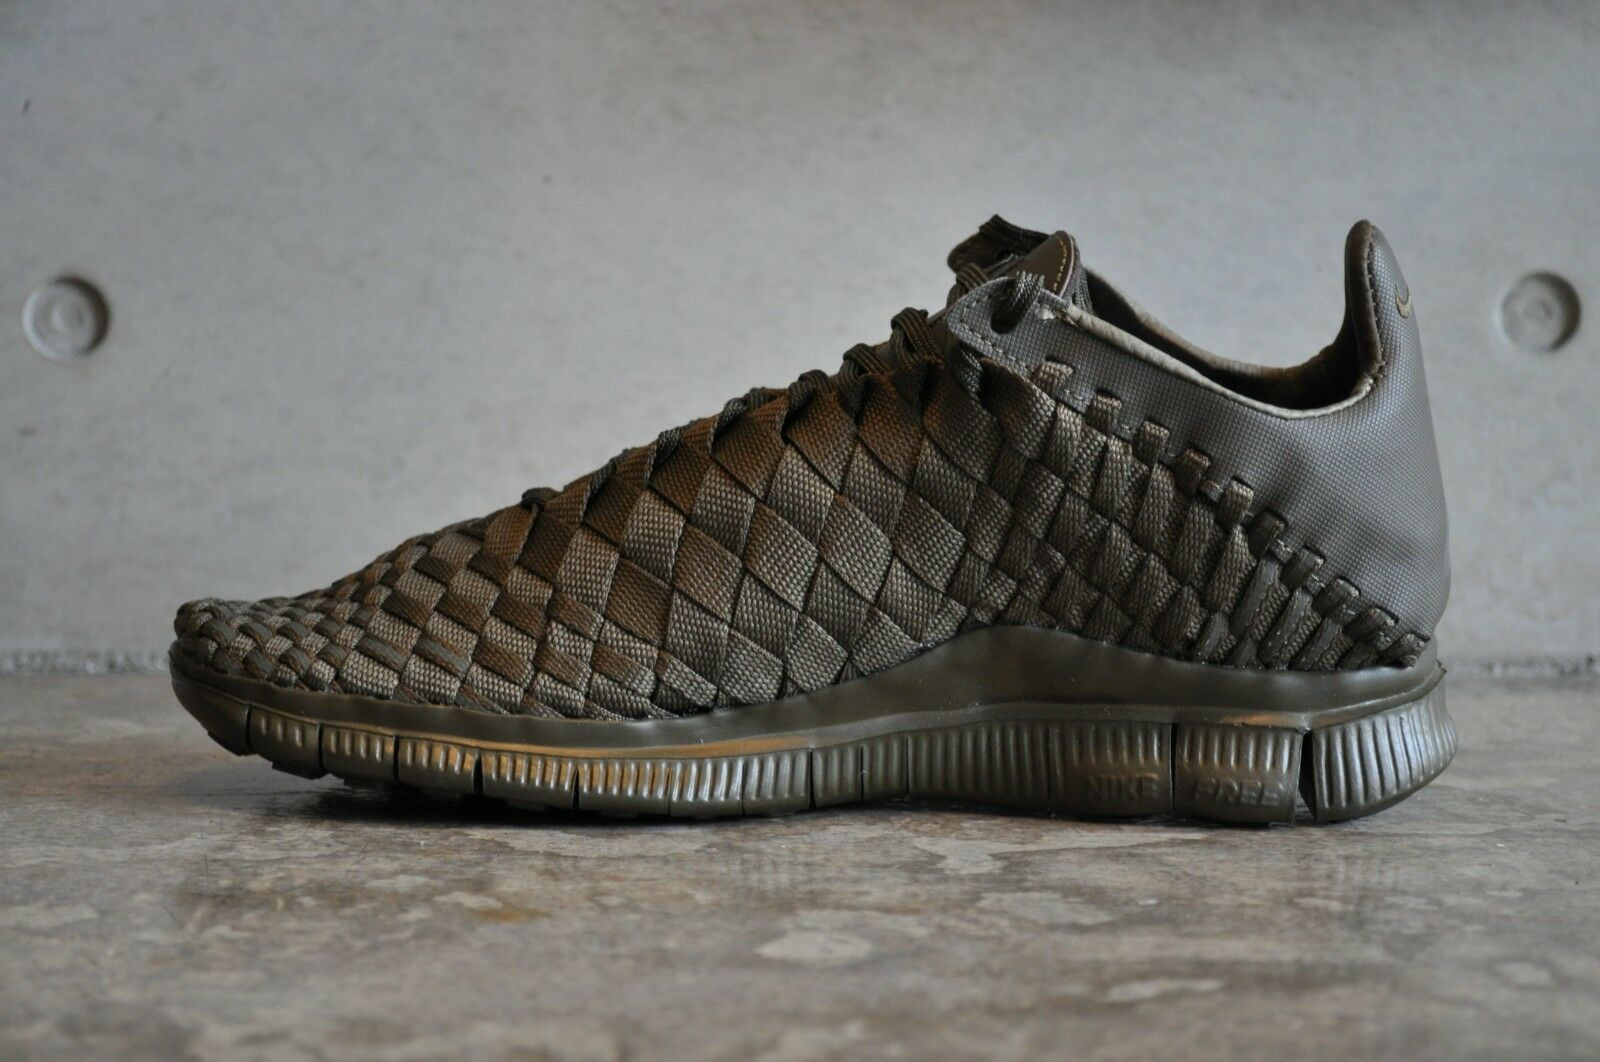 Nike Free Inneva Woven Tech SP Olive - UK Dark Loden/Dark Loden 7 UK - 41 EUR 8 US 6c8882